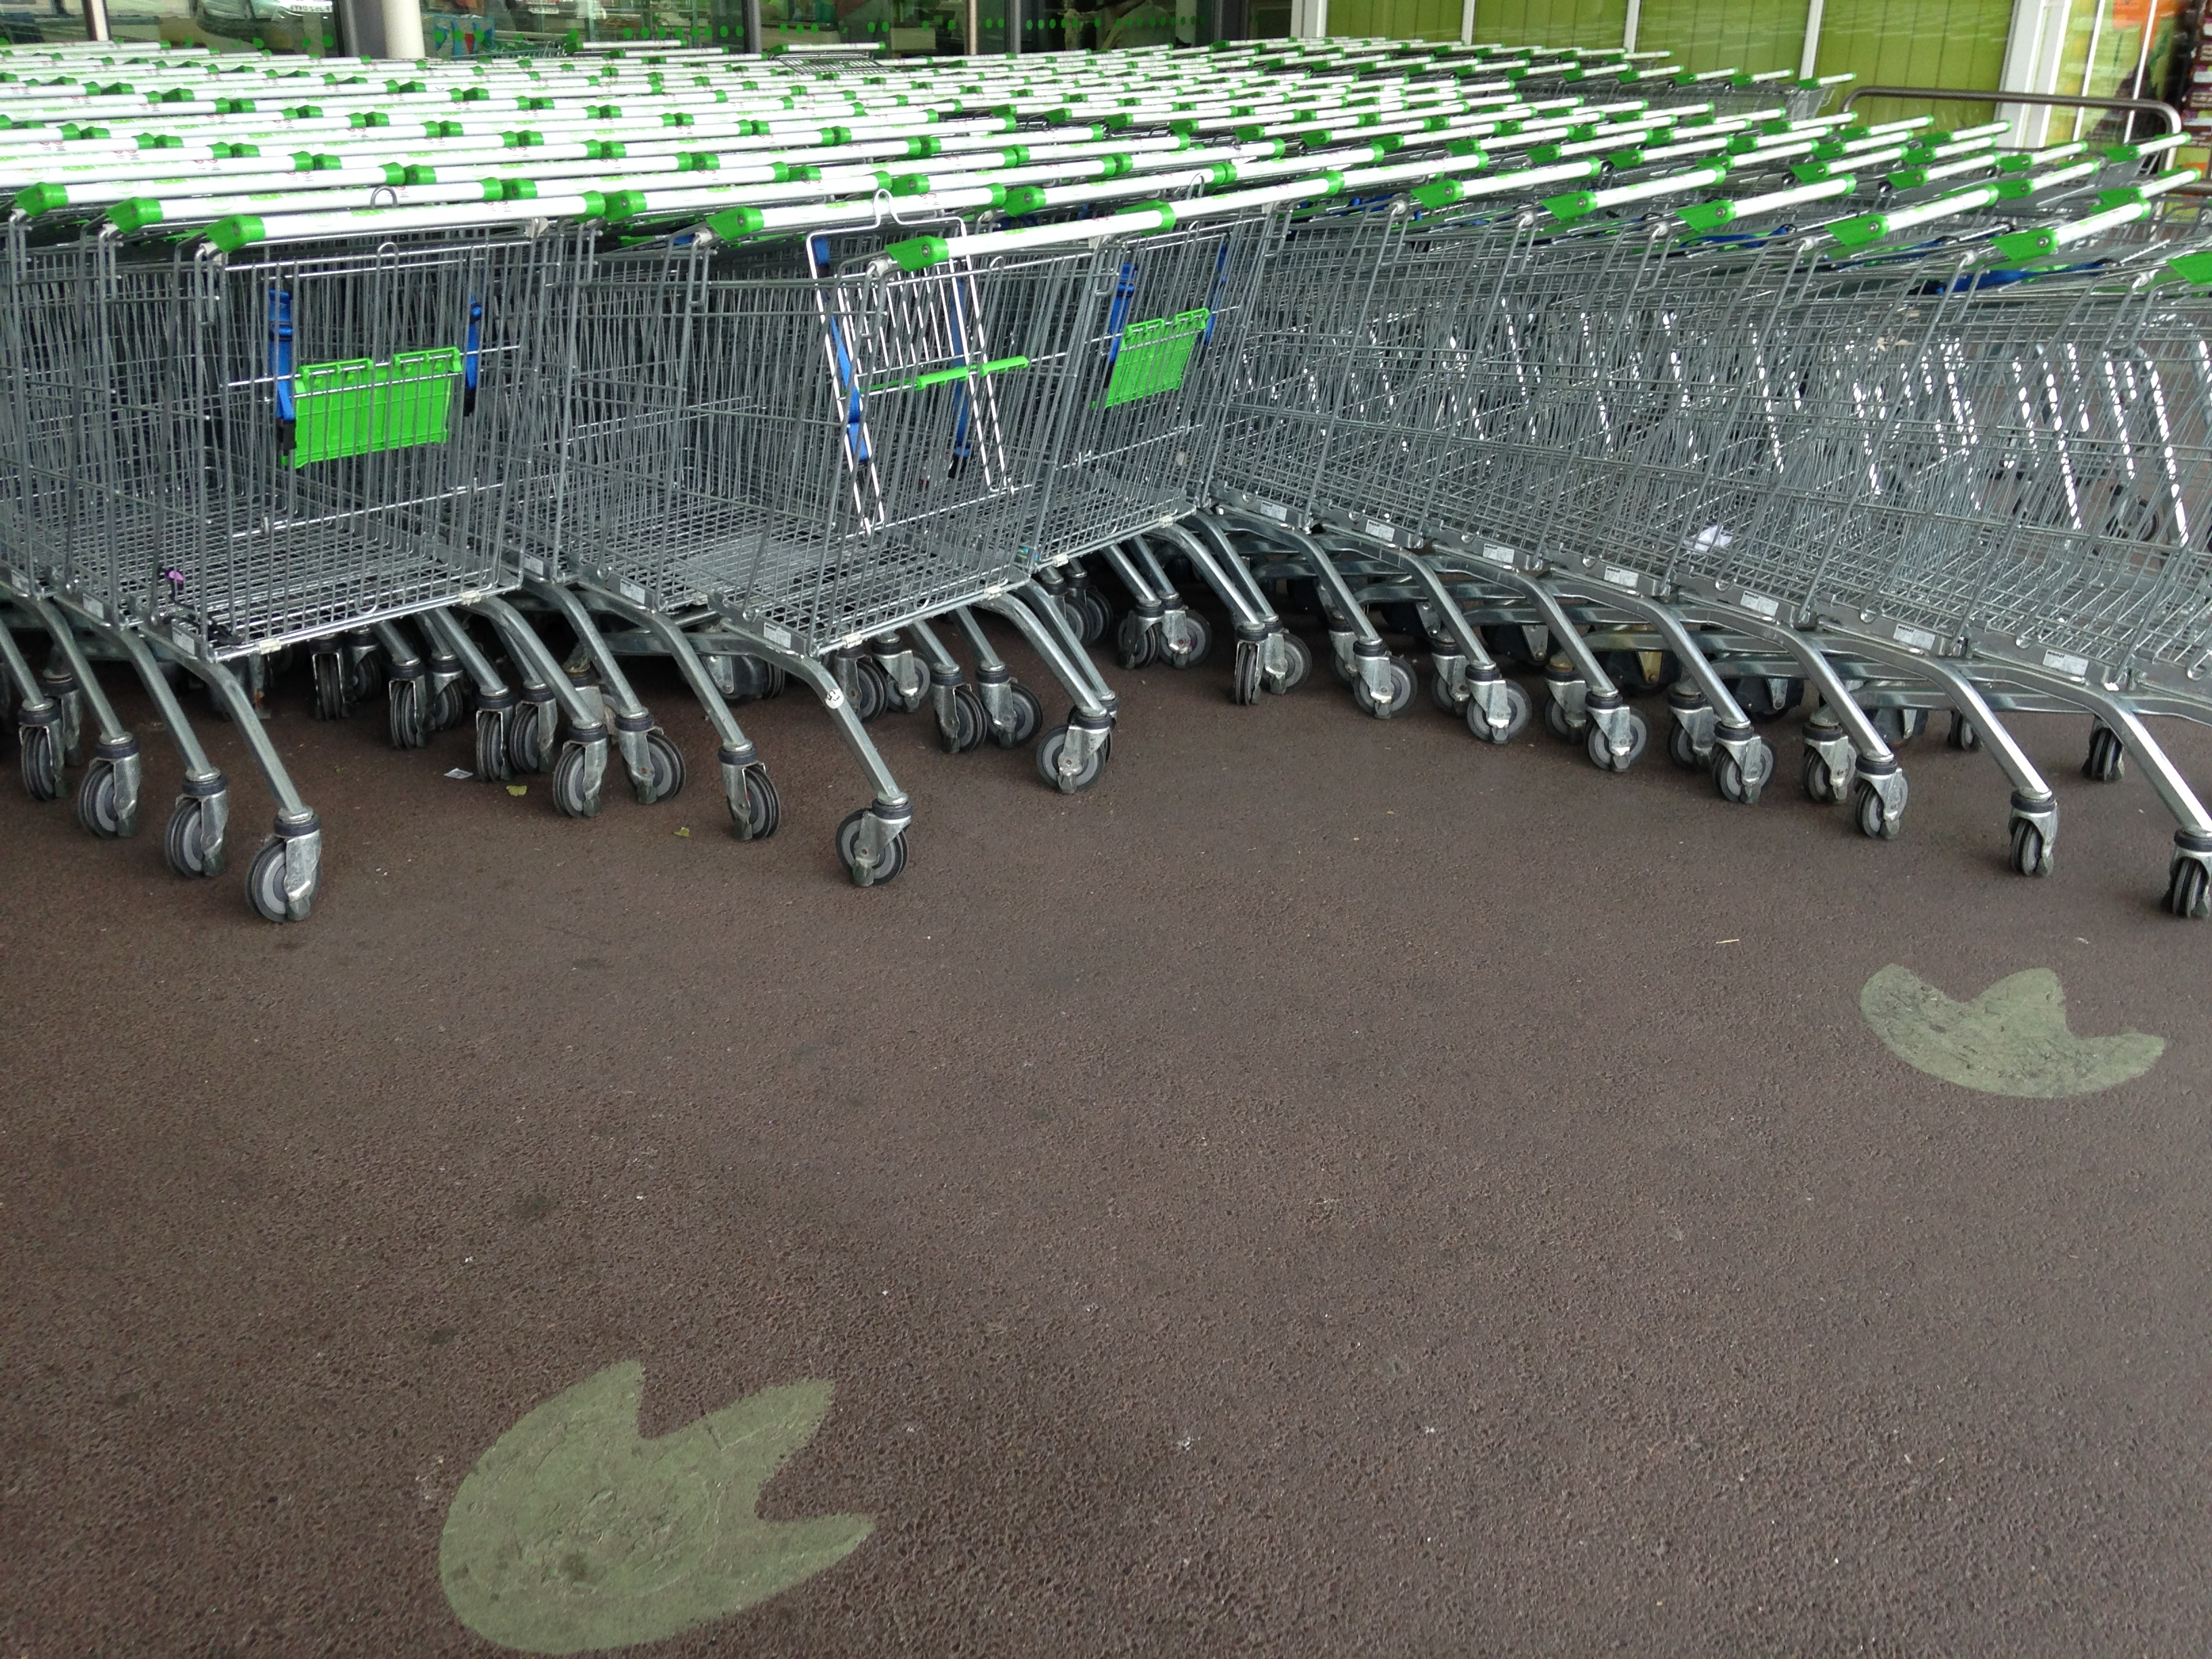 Lair of the Saurian: An exploration of Asda's Jurassic Car Park